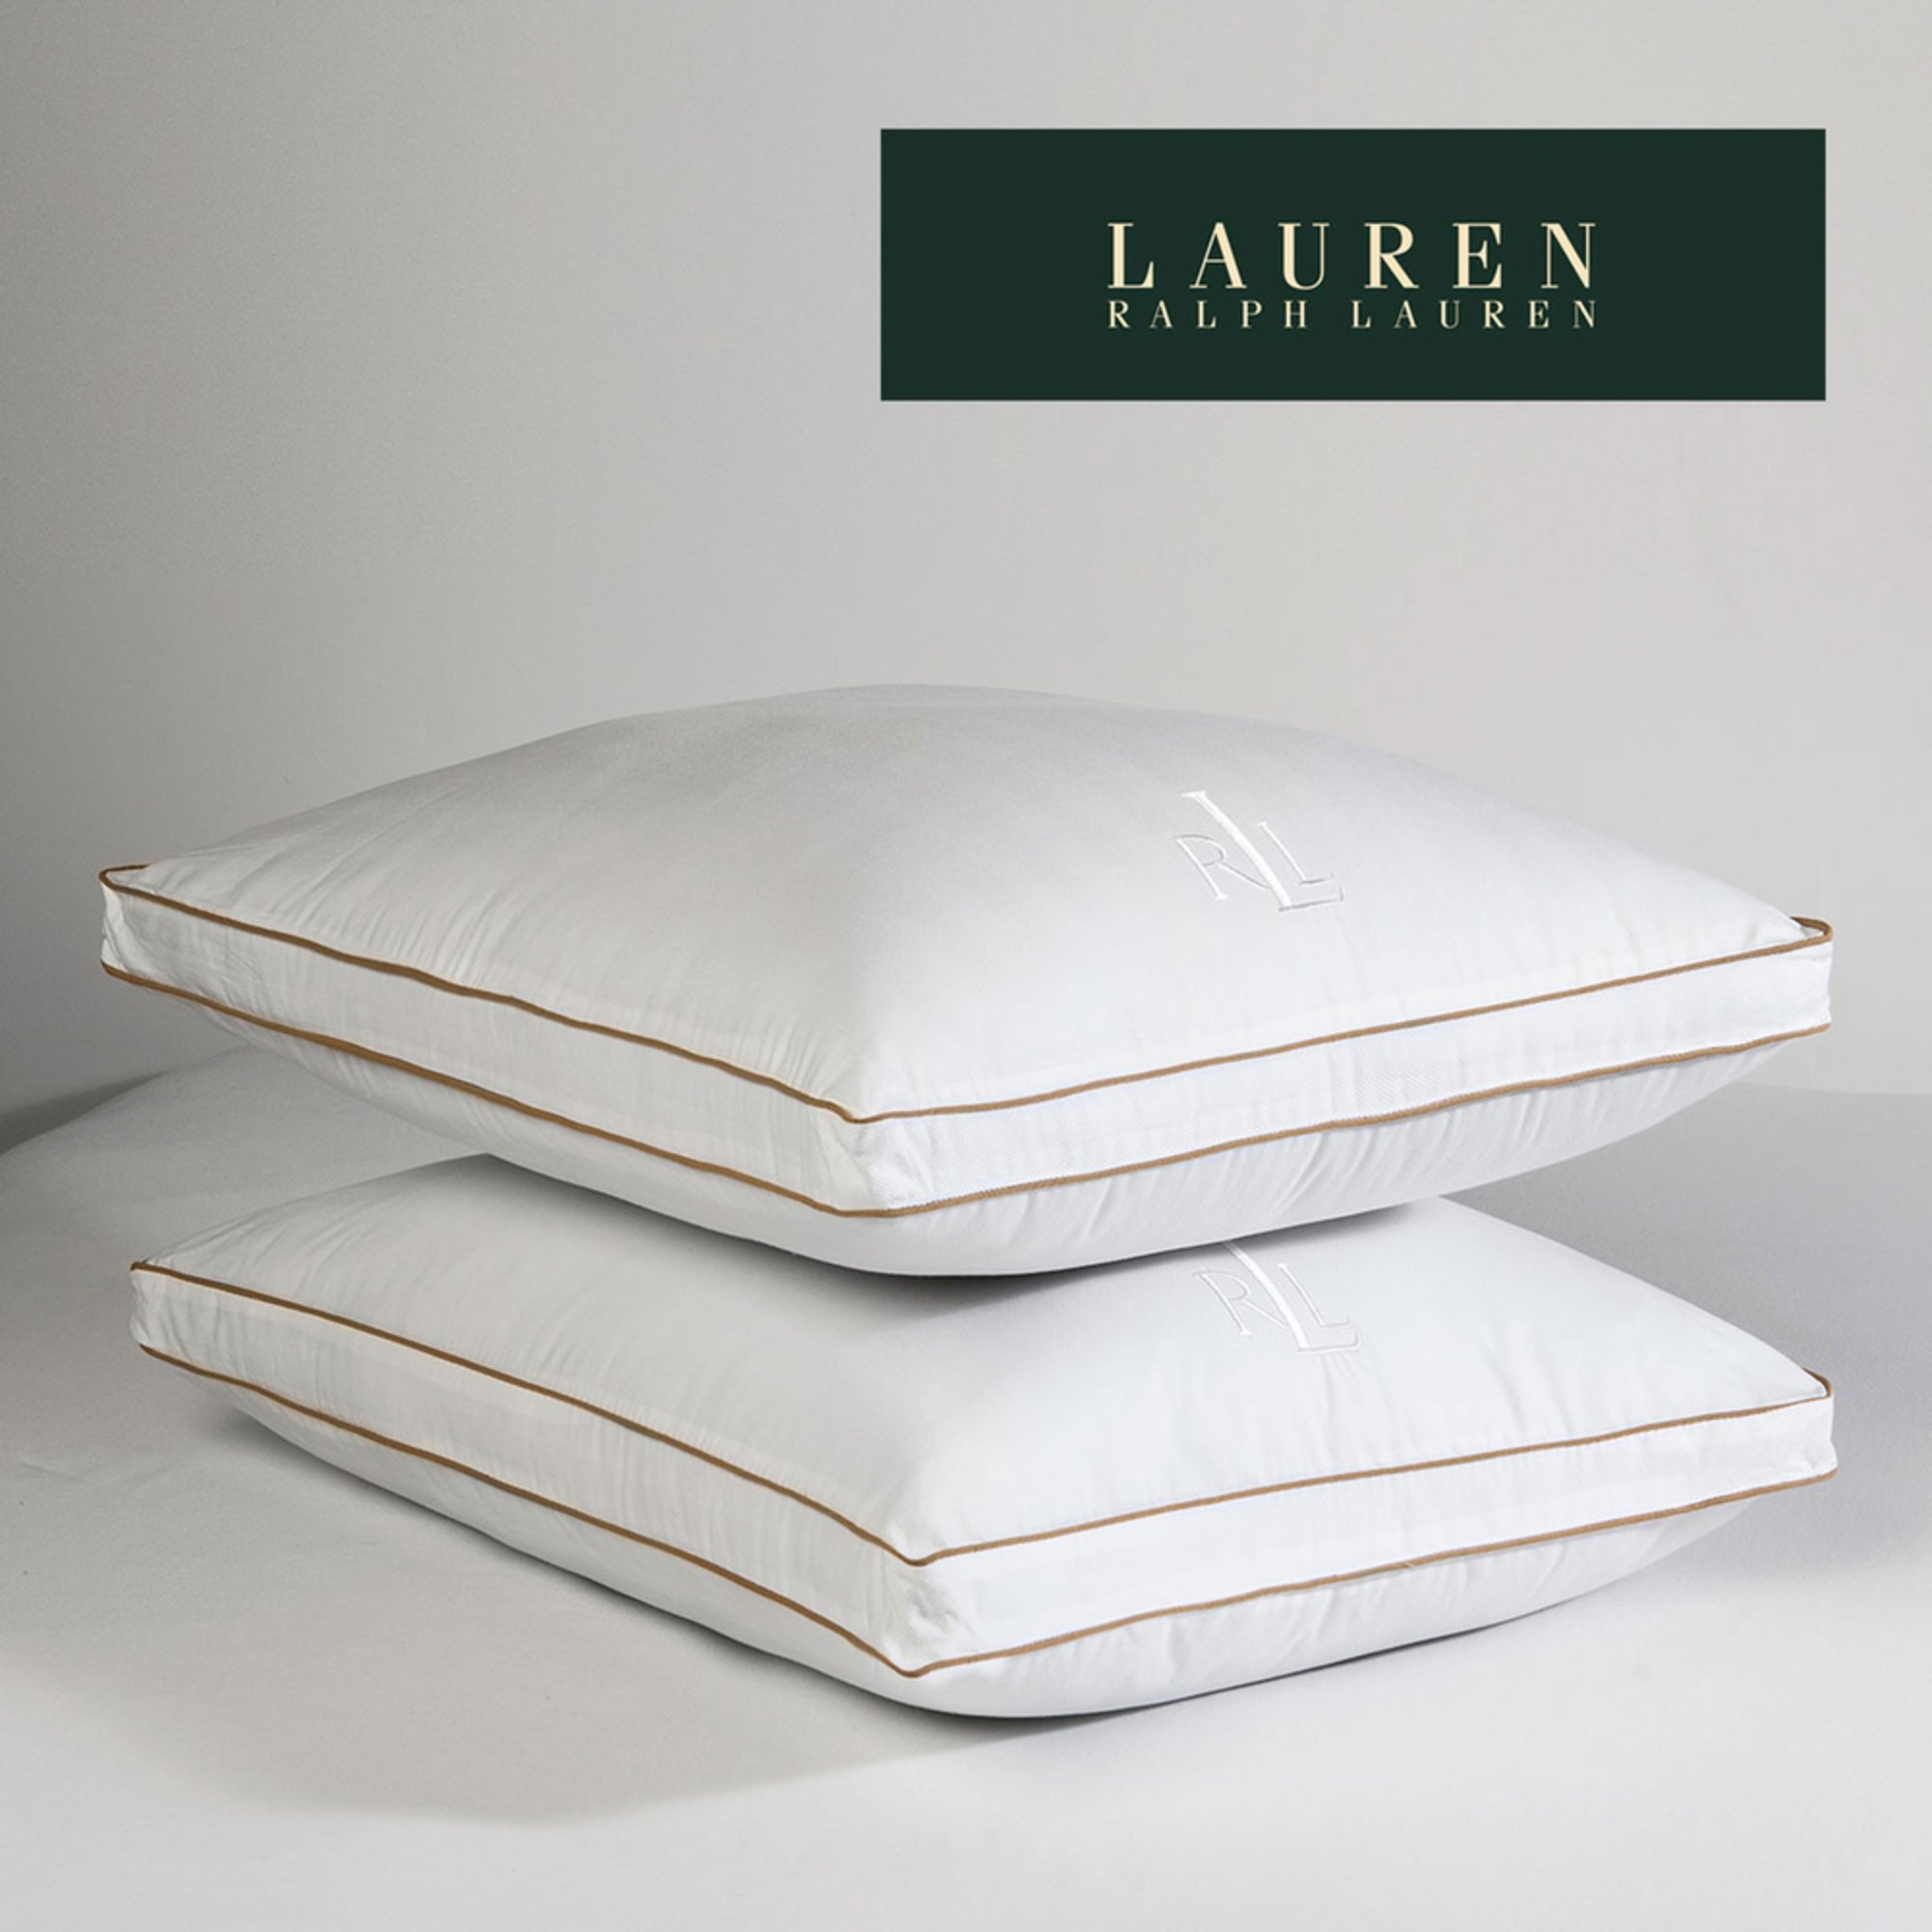 Tempur Traditional Pillow Firm Review : Firm Bed Pillows tempur traditional firm pillow in stock next day delivery, room essentials ...